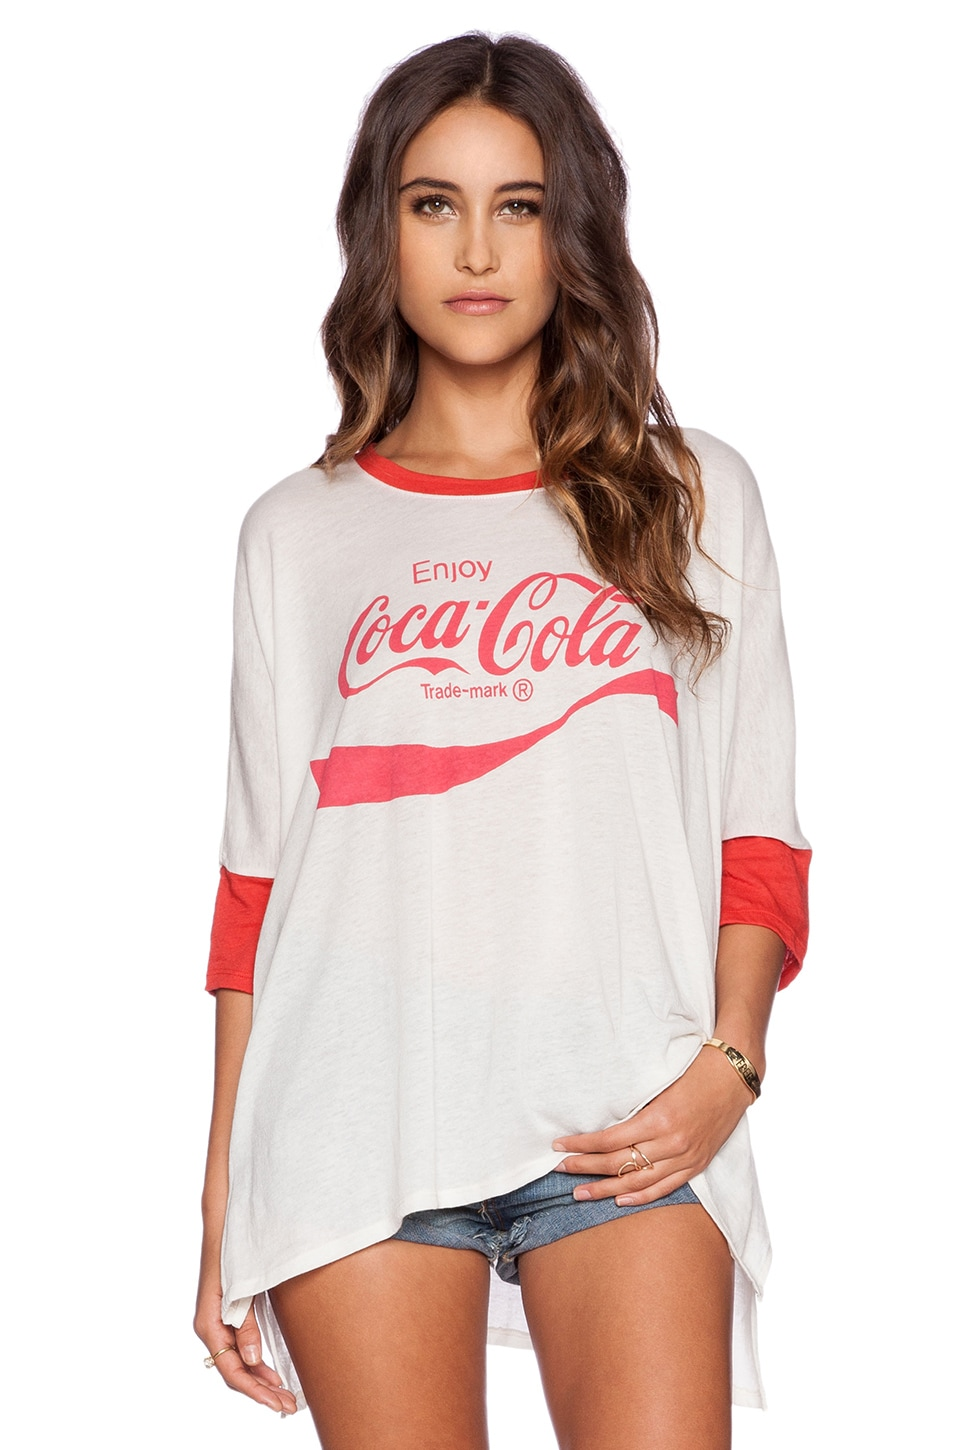 Wildfox Couture Cocoa Cola Tee in Vintage Lace